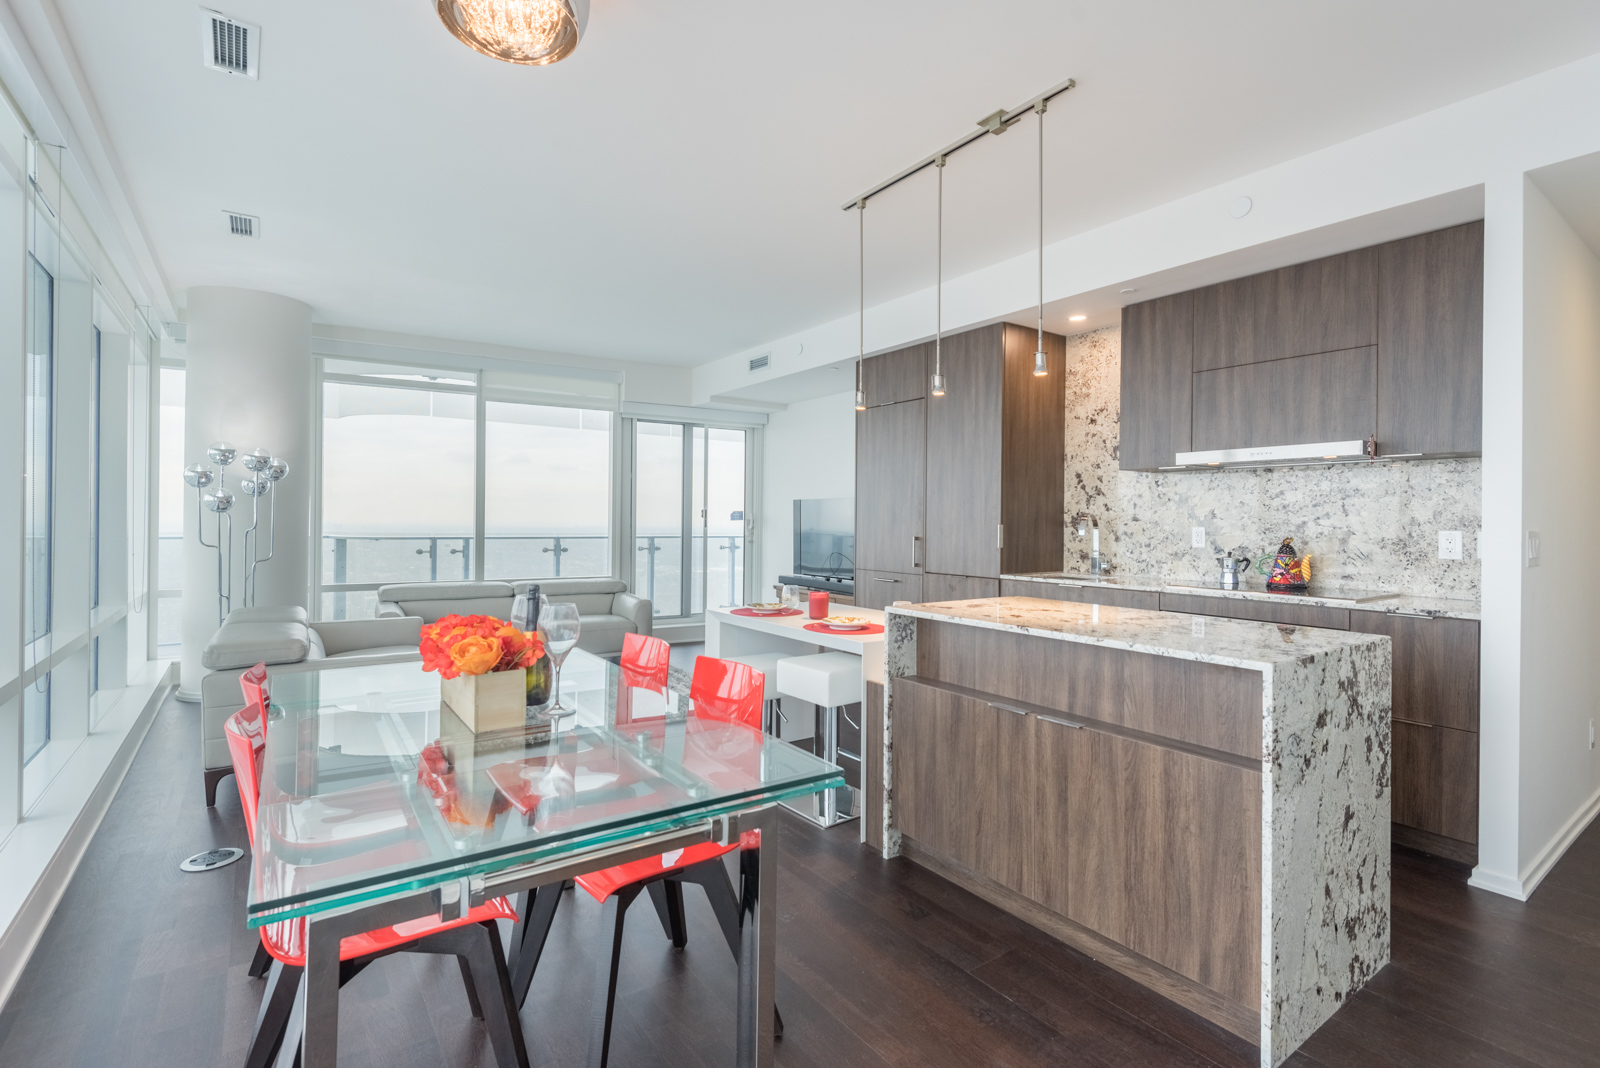 This image shows the condo's open concept design, including the kitchen and living room